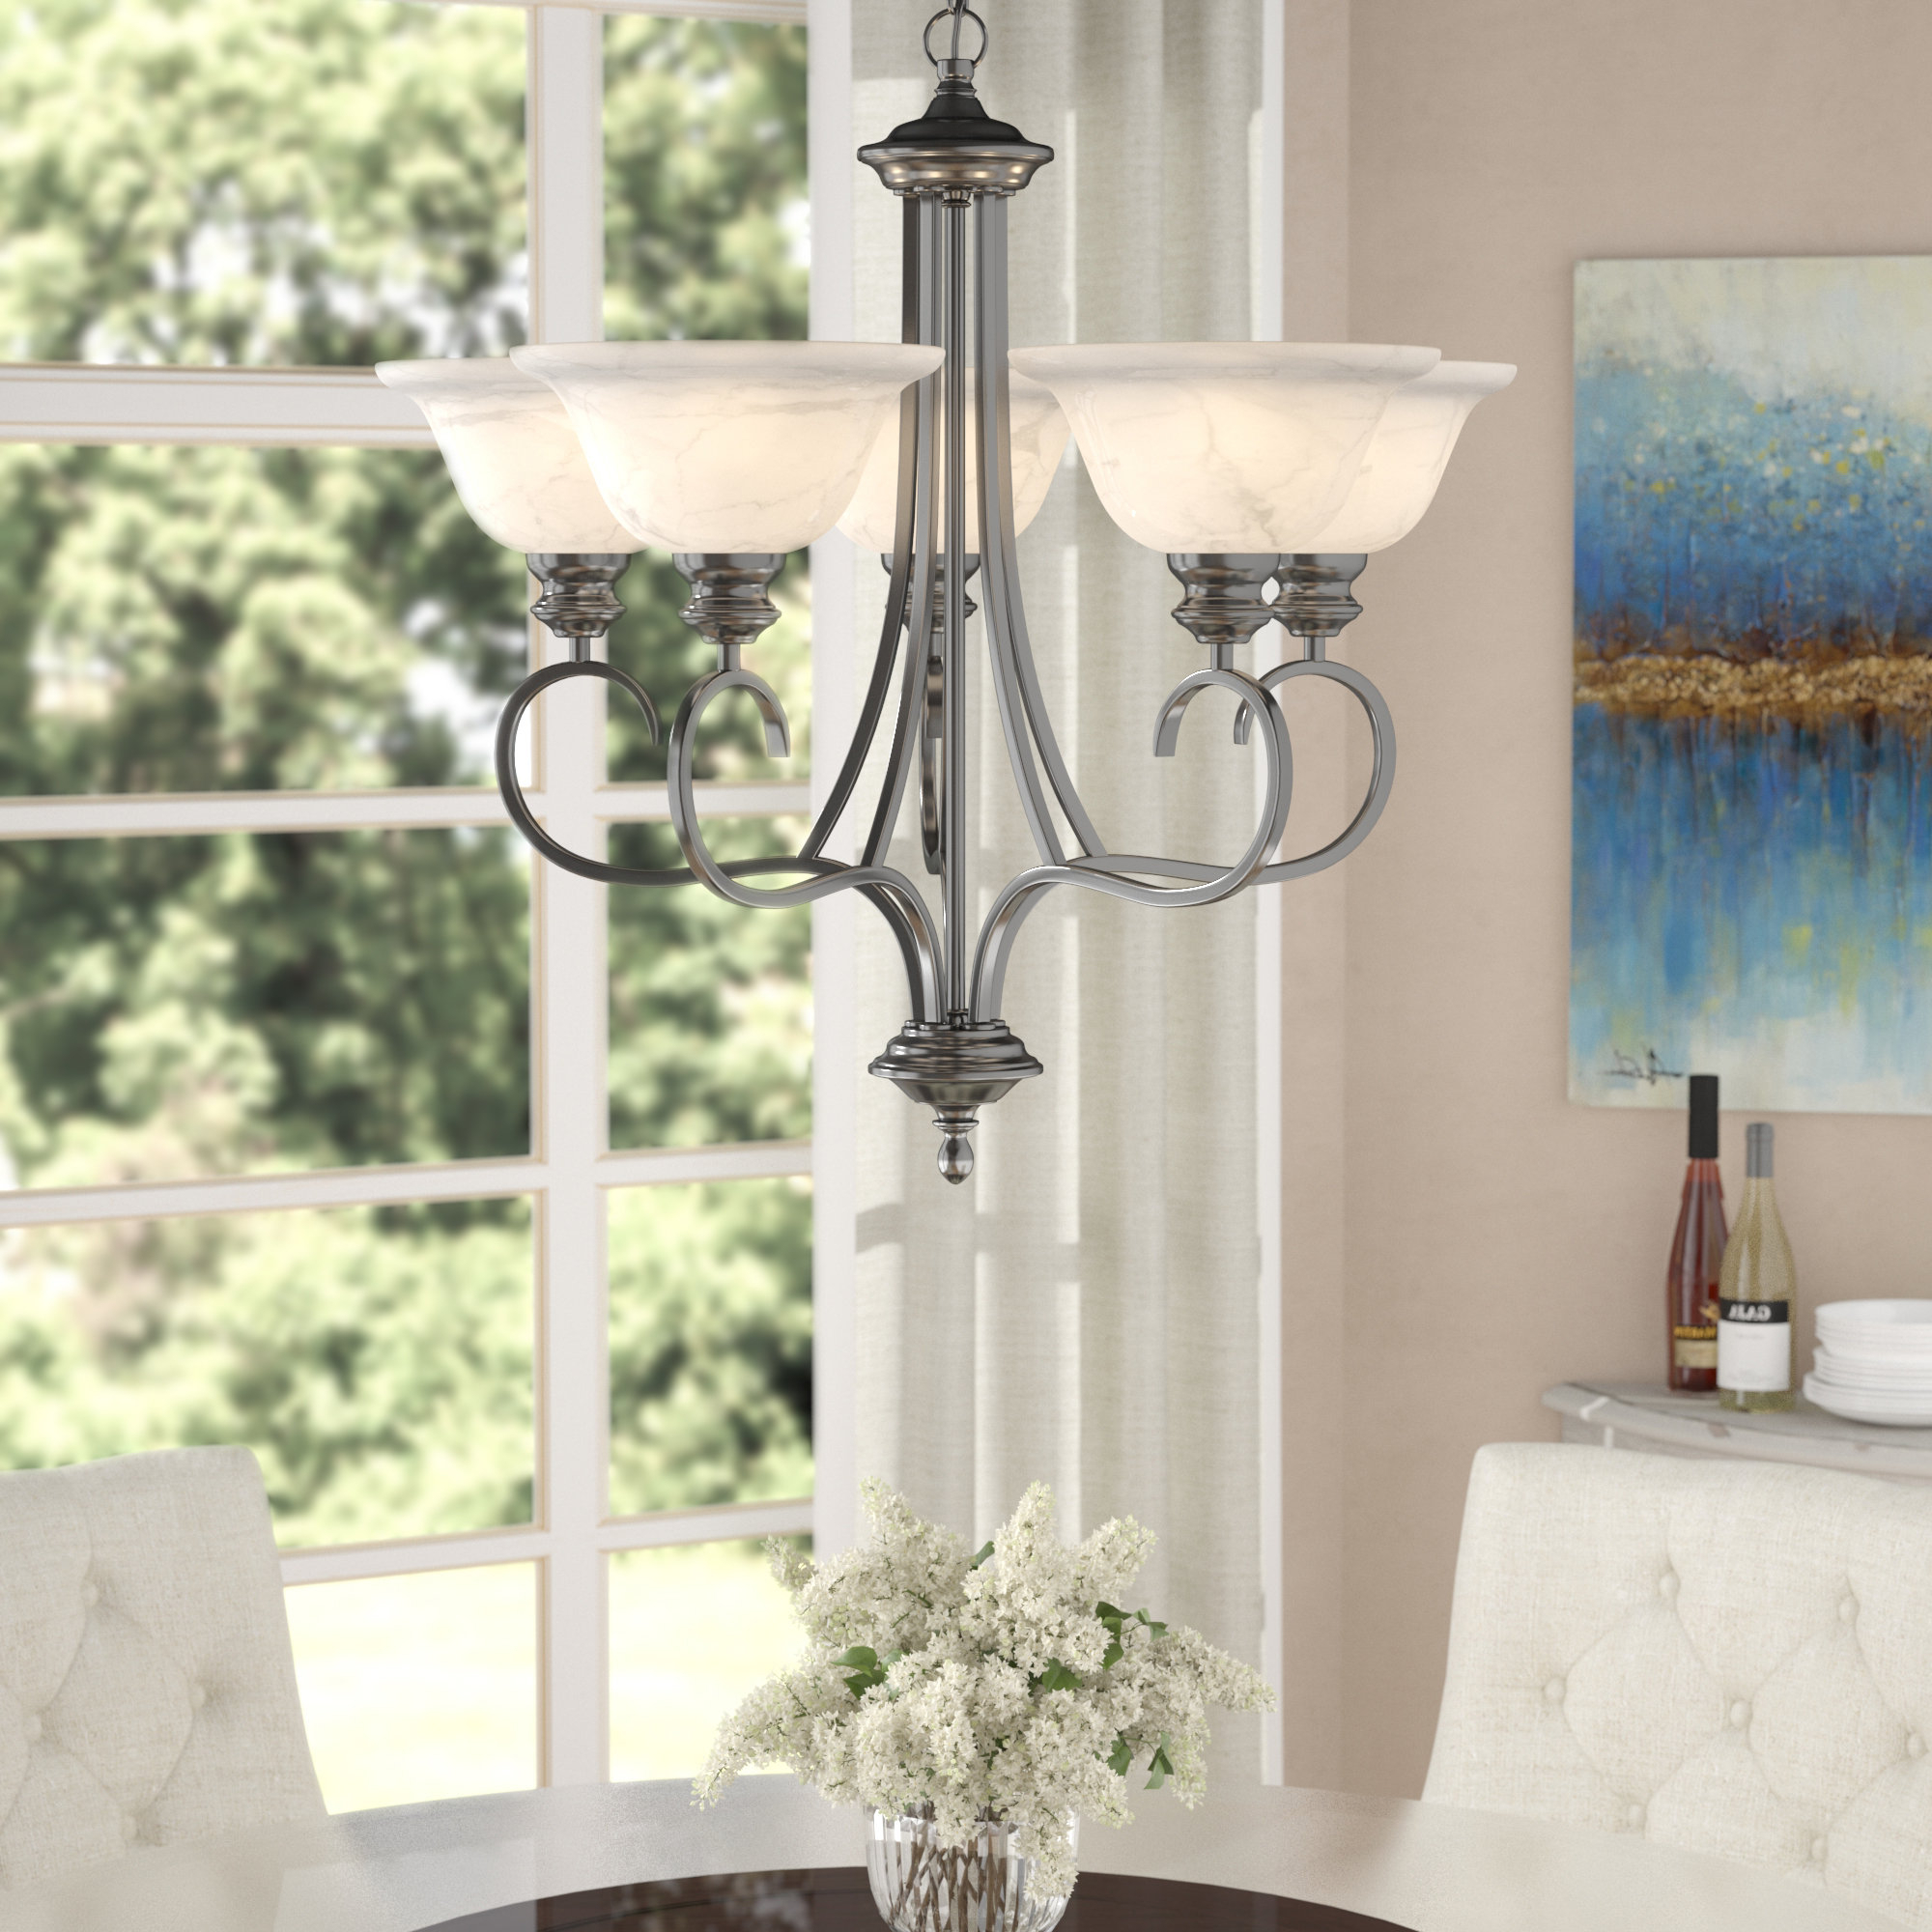 Gaines 5 Light Shaded Chandeliers Within Trendy Newson 5 Light Shaded Chandelier (View 11 of 20)